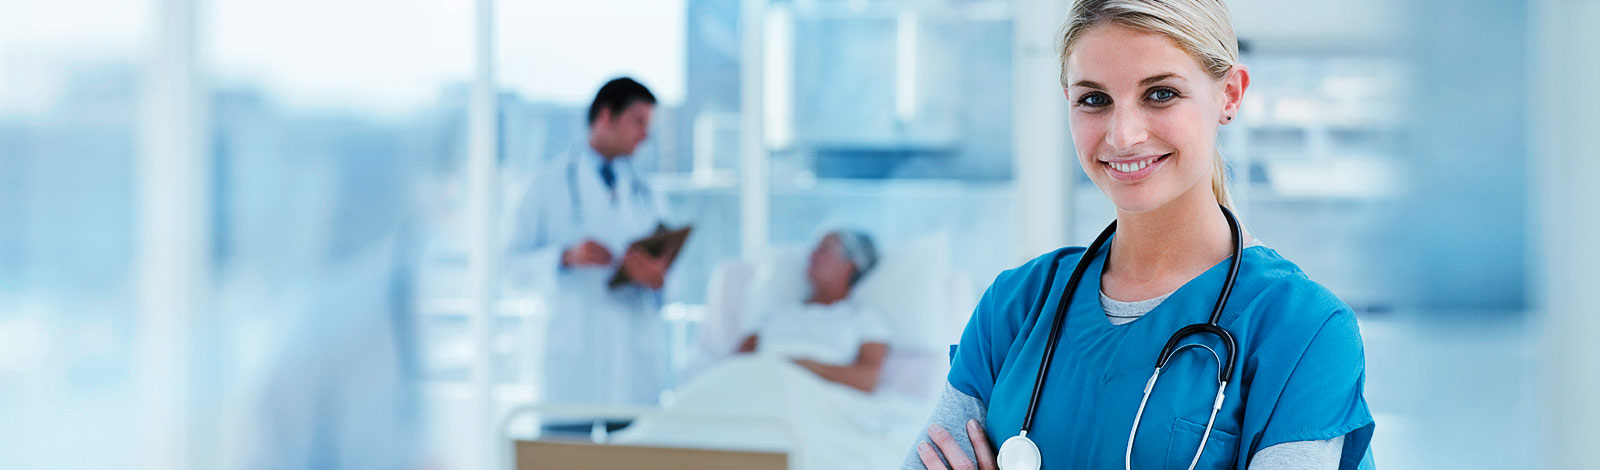 Health Care Careers Damar Staffing of Indianapolis